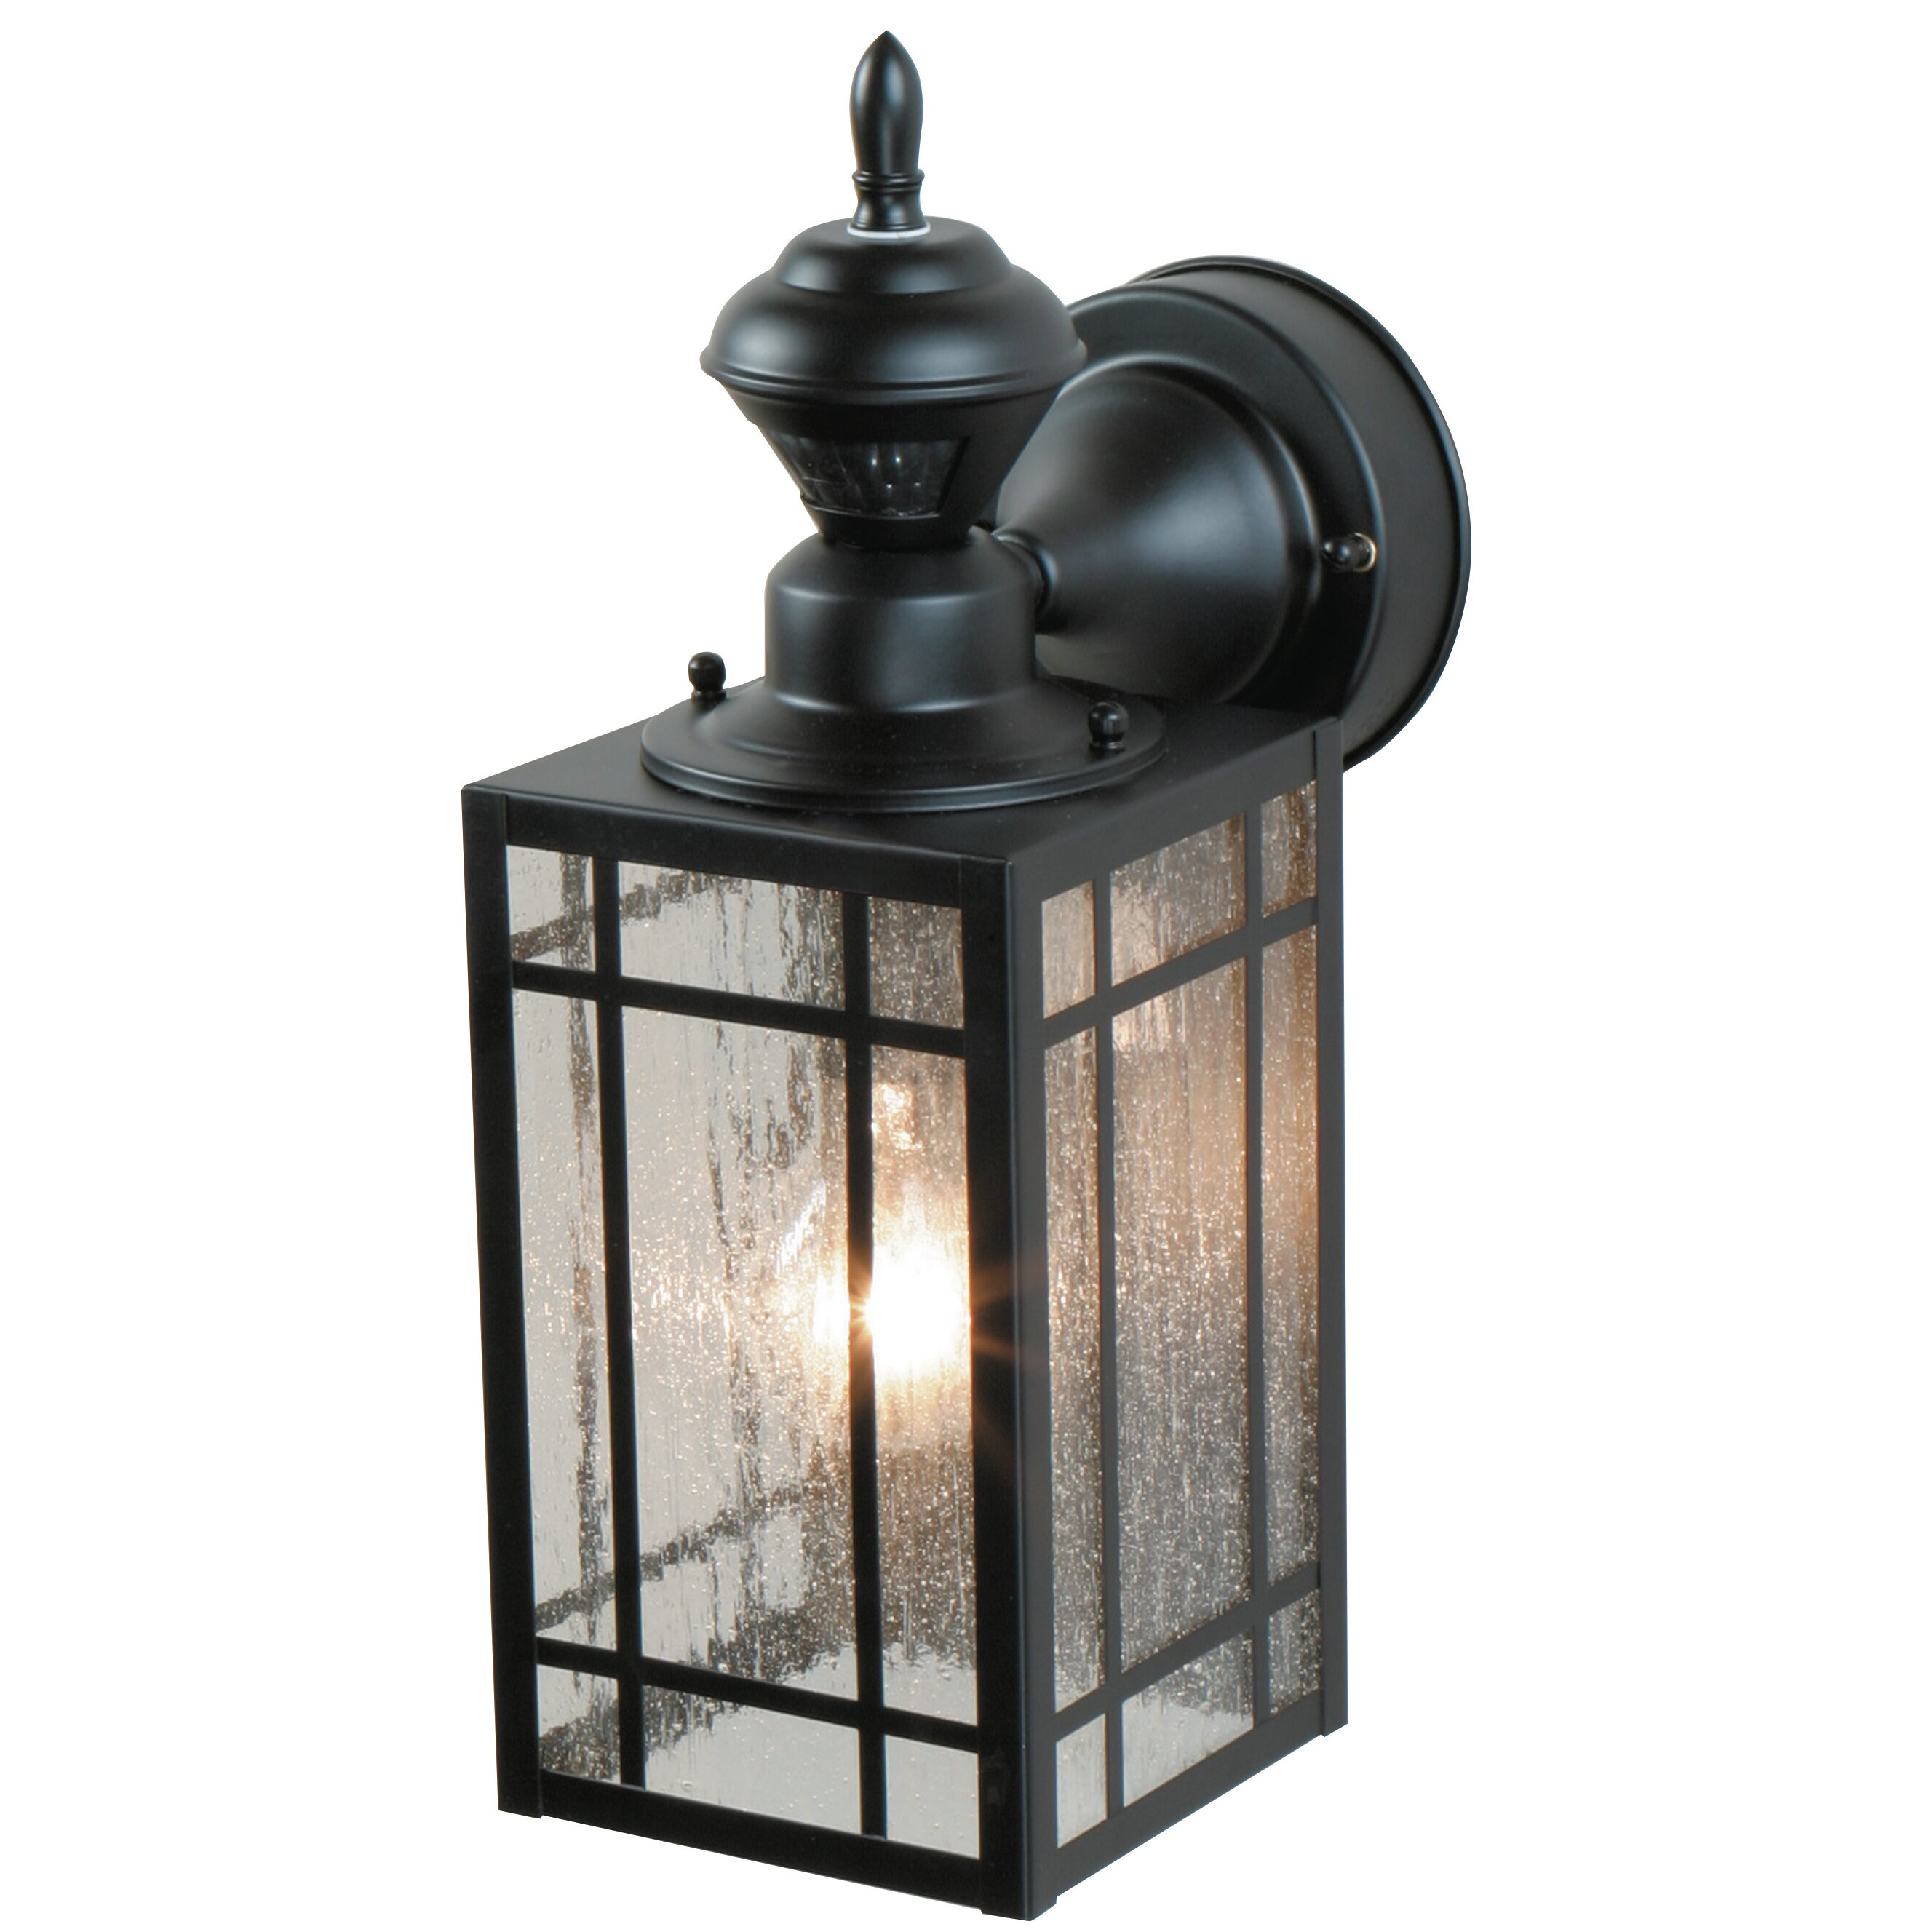 Heath zenith 1 light outdoor wall lantern reviews wayfair for Exterior wall light with motion sensor